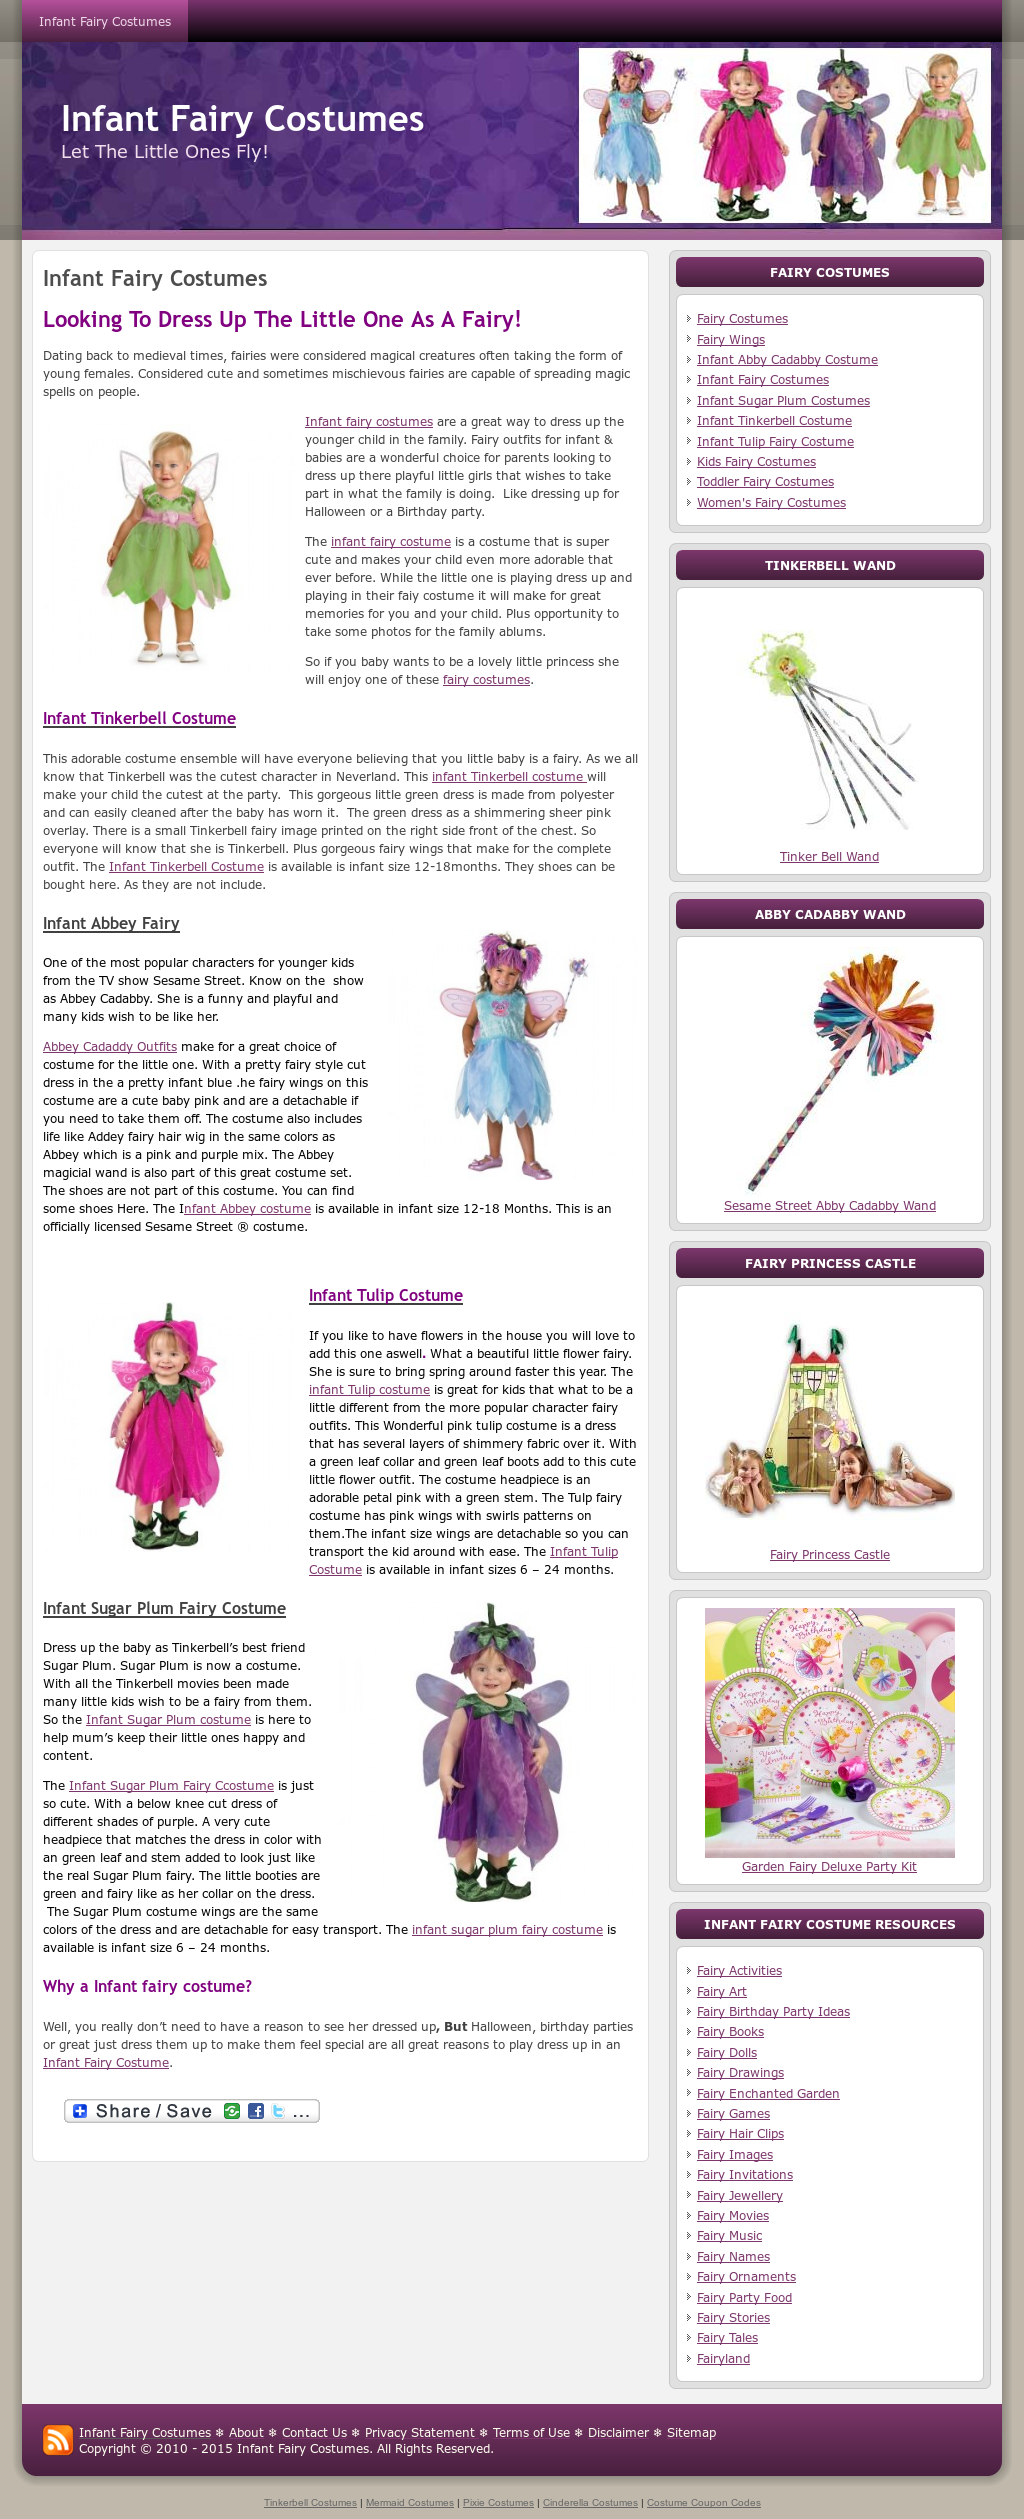 Infant Fairy Costumes Competitors, Revenue and Employees - Owler